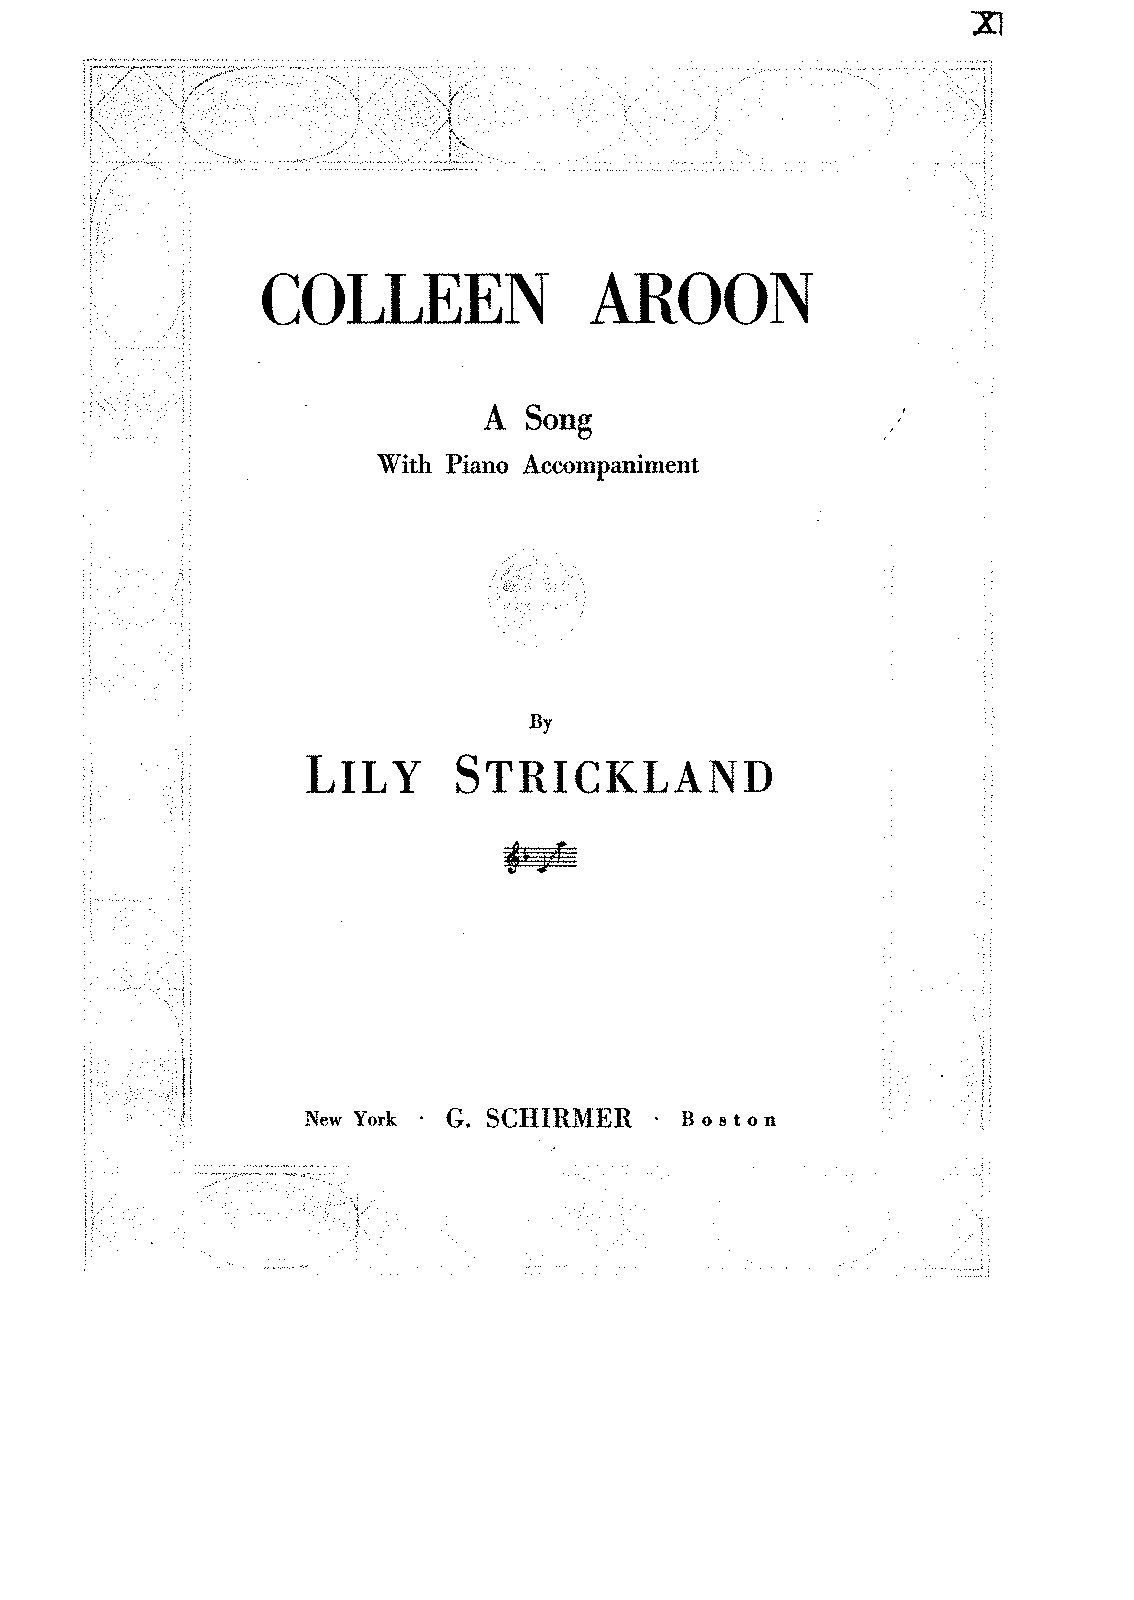 SIBLEY1802.16080.cac8-39087011997931colleen.pdf